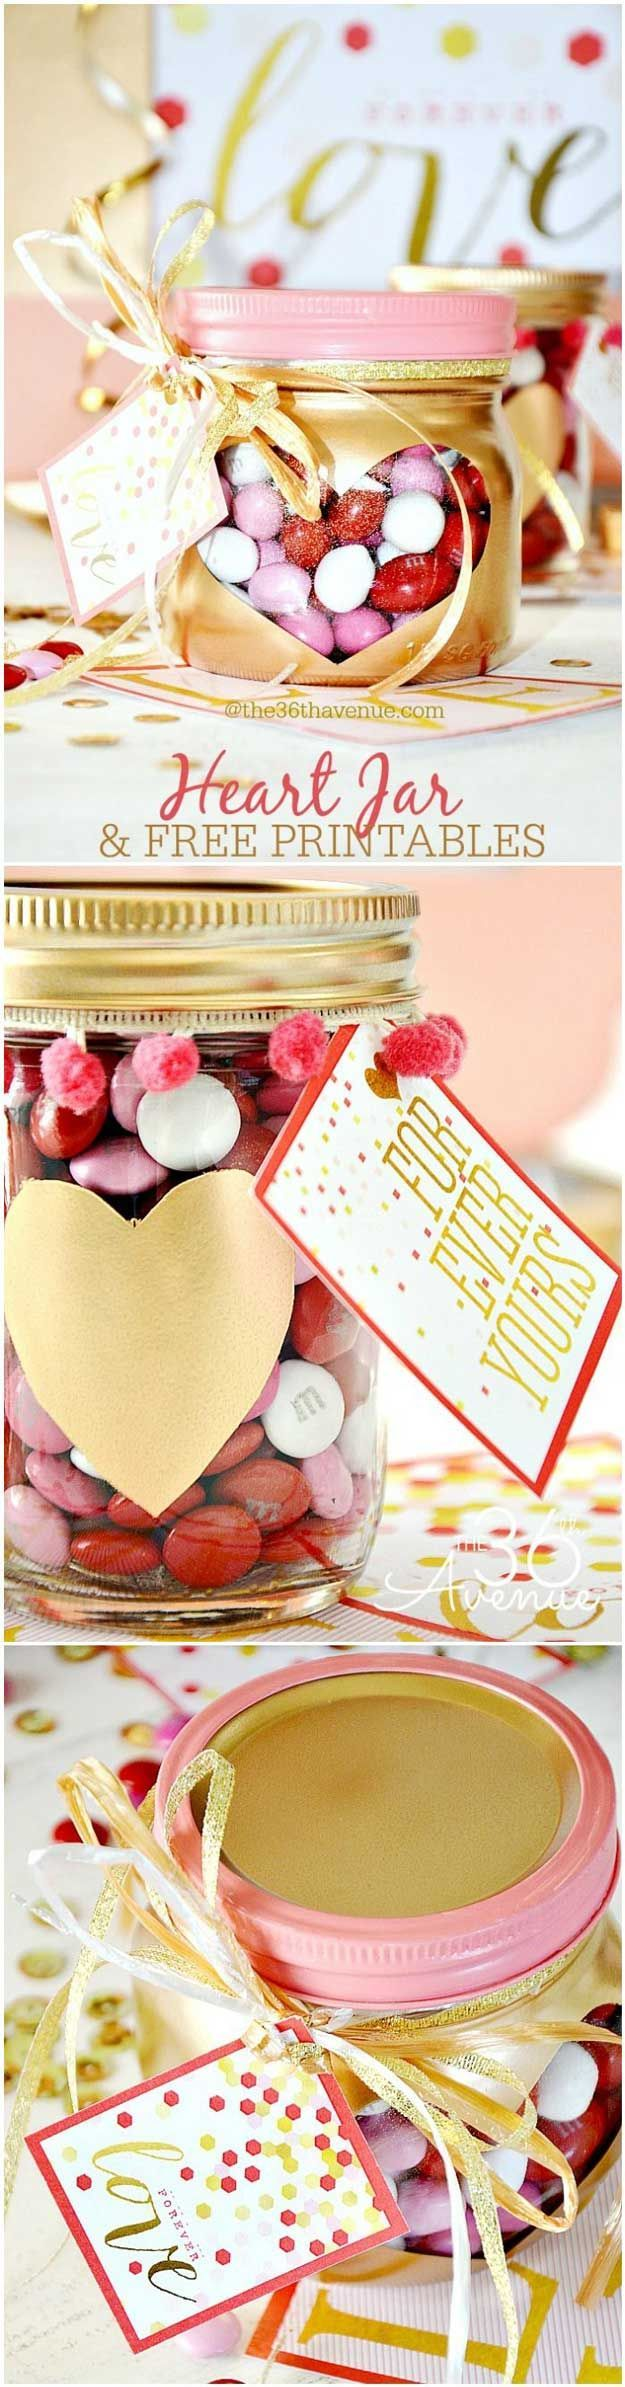 Mason Jar Valentine Gifts and Crafts | DIY Ideas for Valentines Day for Cute Gift Giving and Decor |   Heart Jars and Free Printables    |  http://diyjoy.com/mason-jar-valentine-crafts